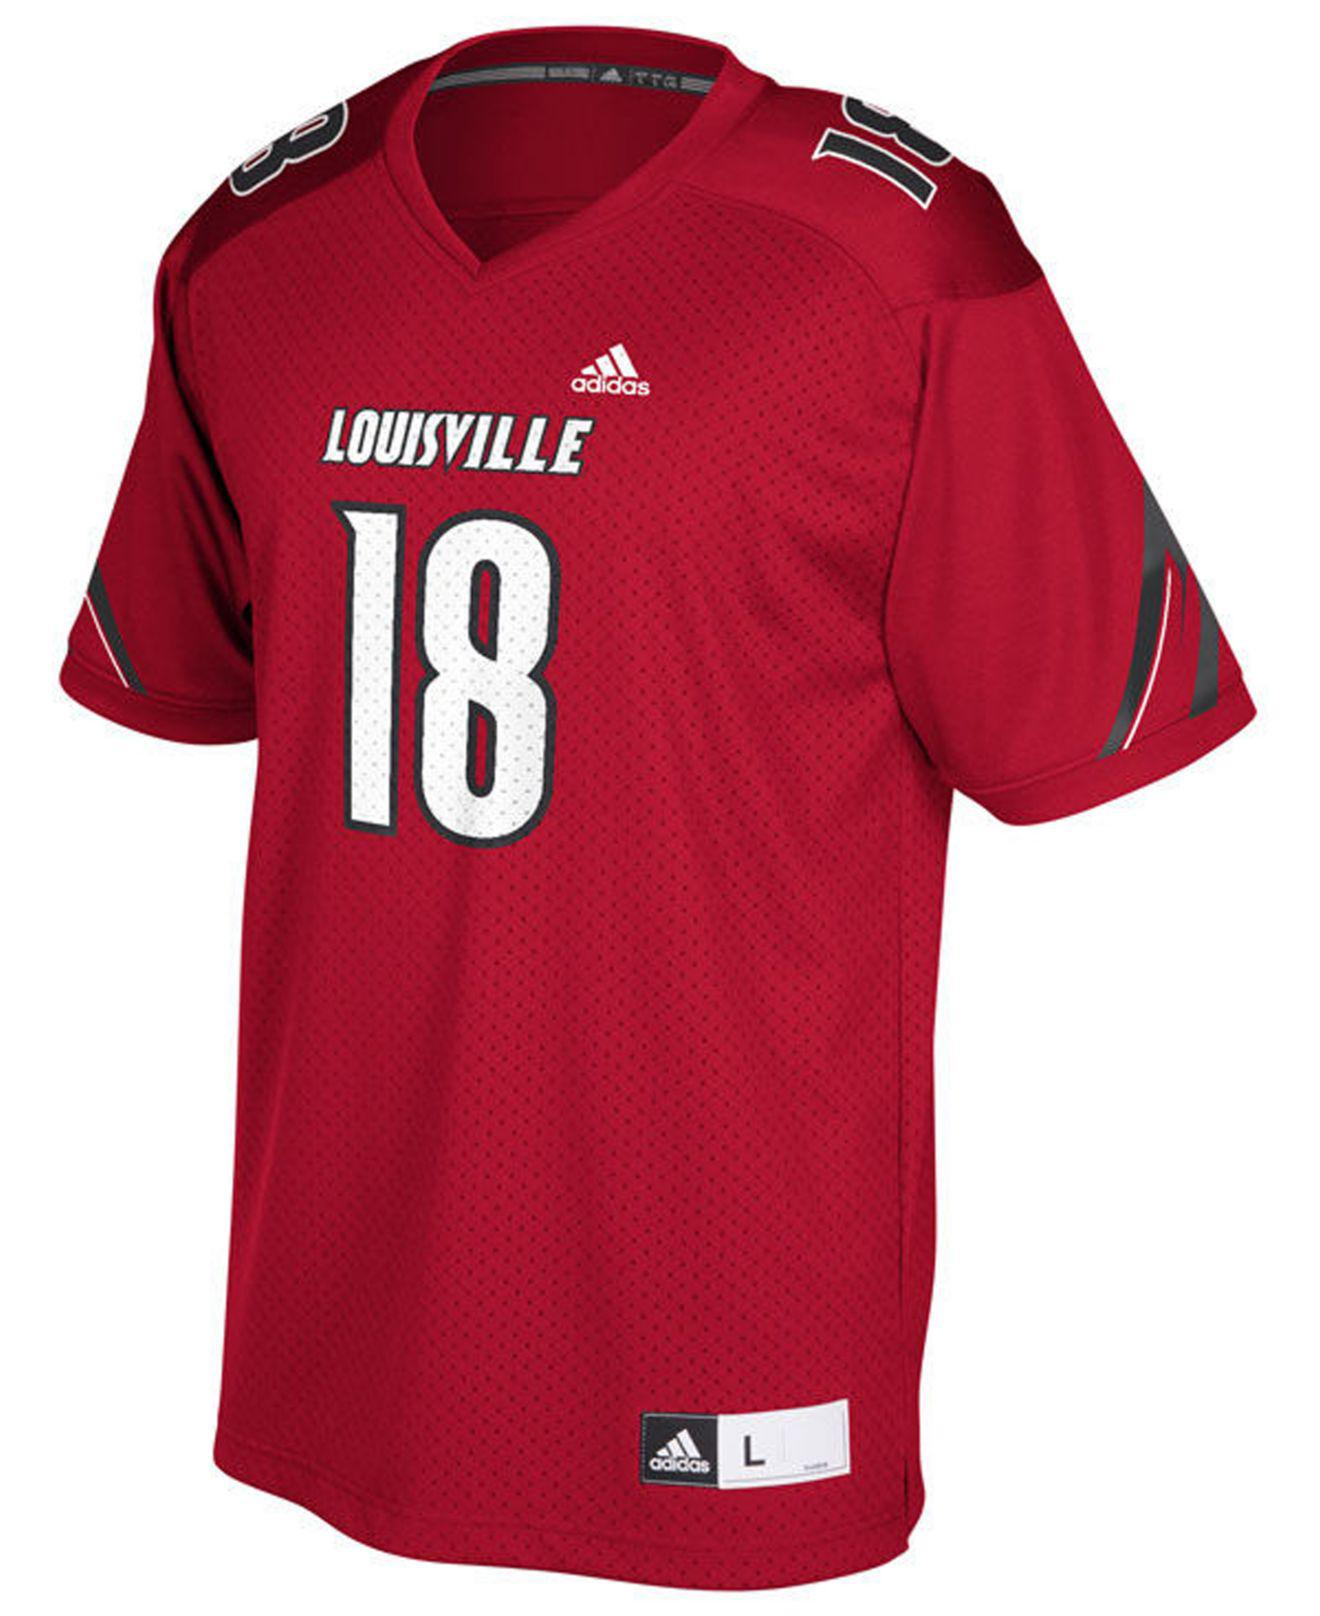 11ab03207 Lyst - adidas Louisville Cardinals Replica Football Jersey in Red for Men